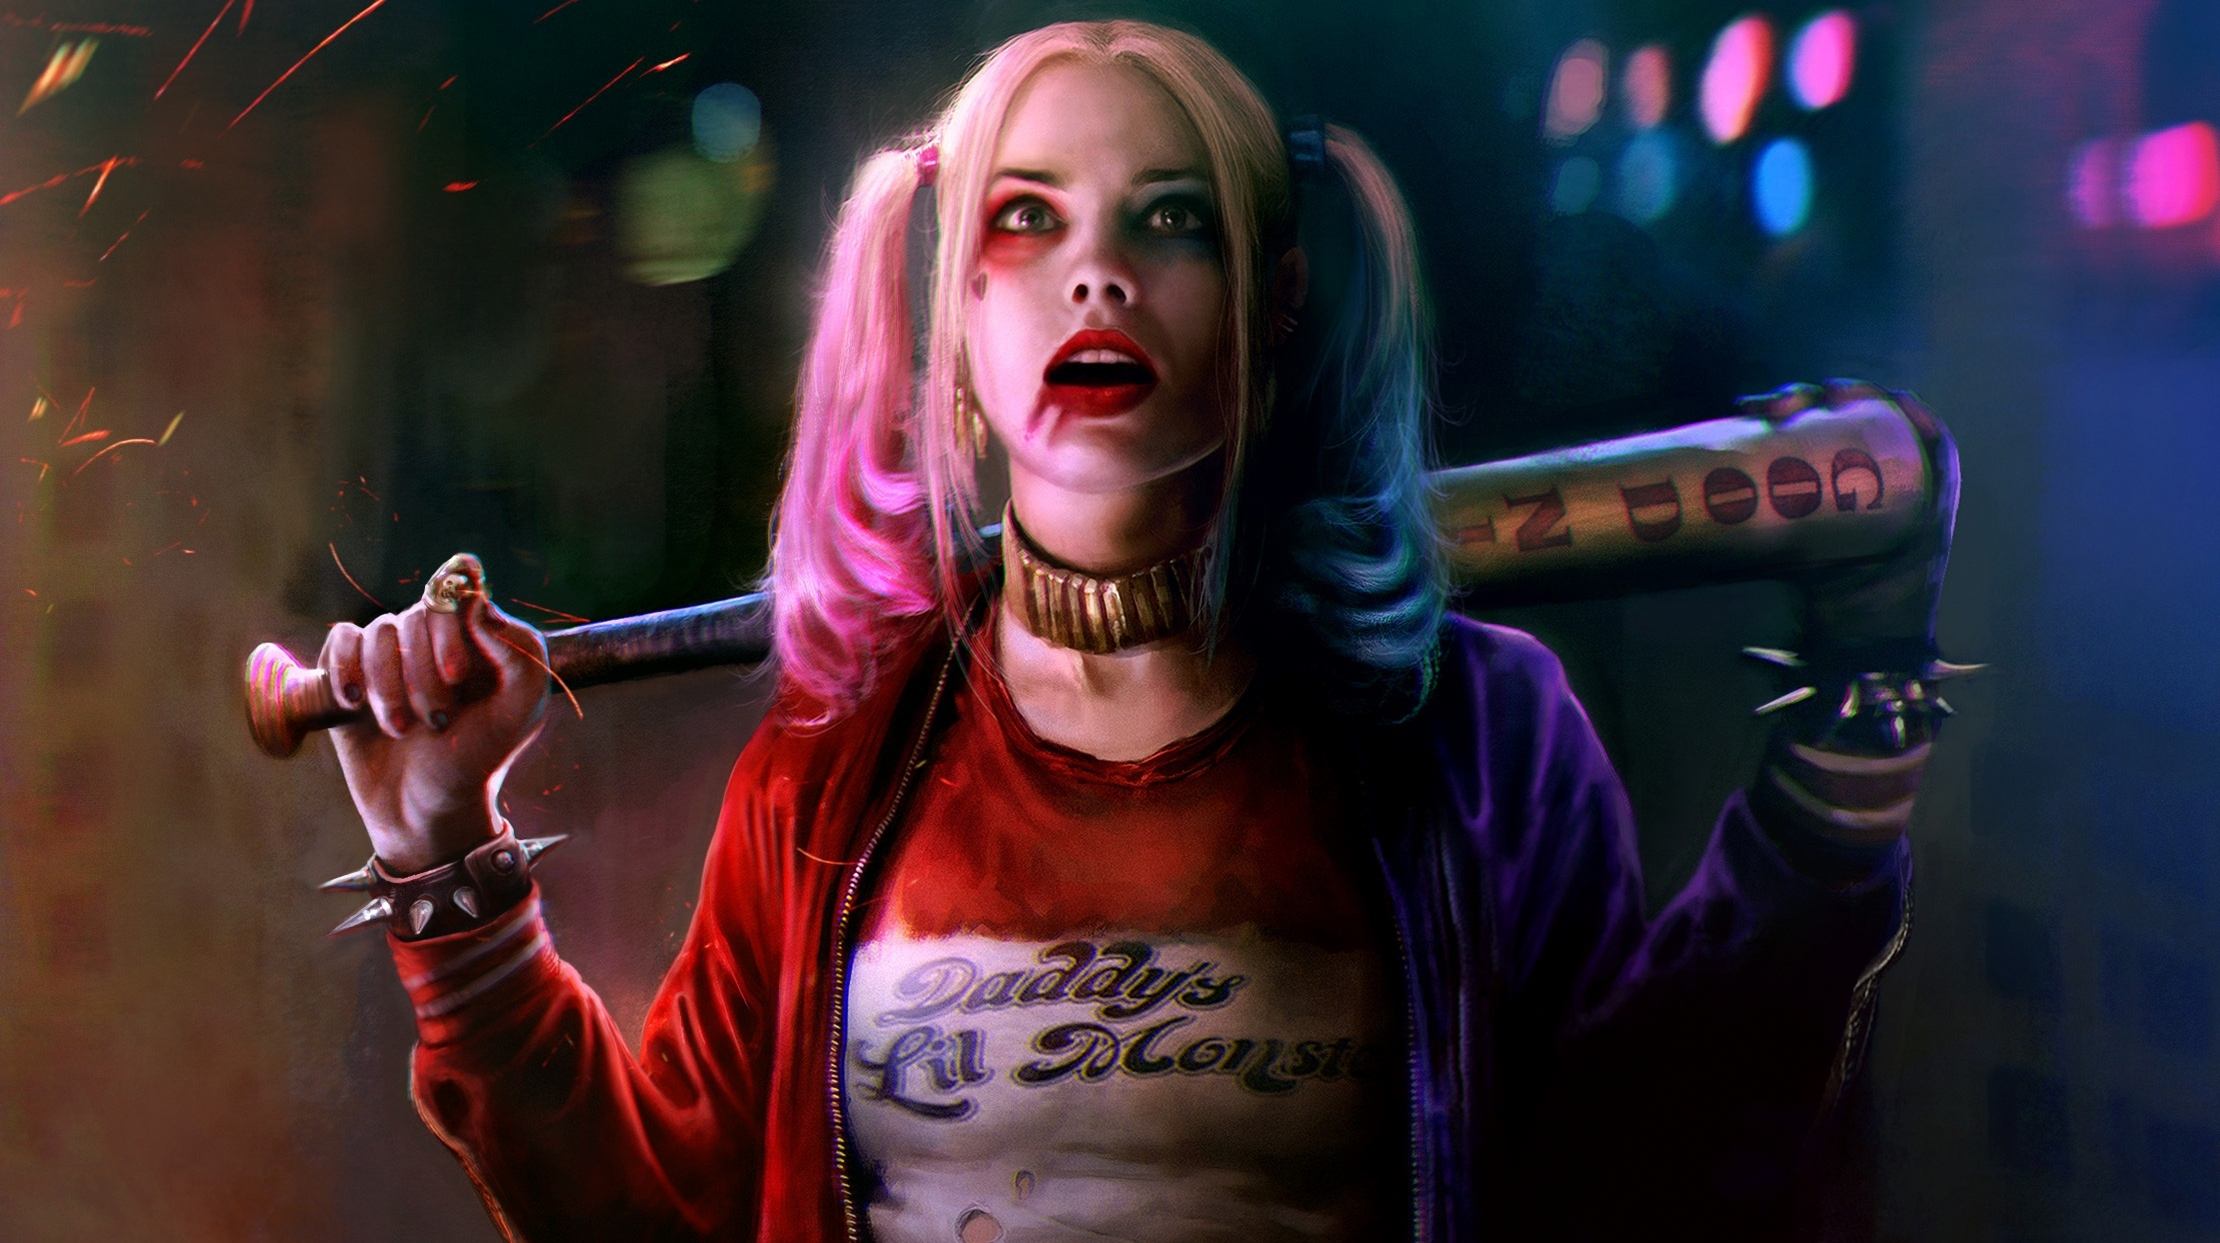 Wallpaper Harley Quinn, Margot Robbie, Suicide Squad, Movies, #1147